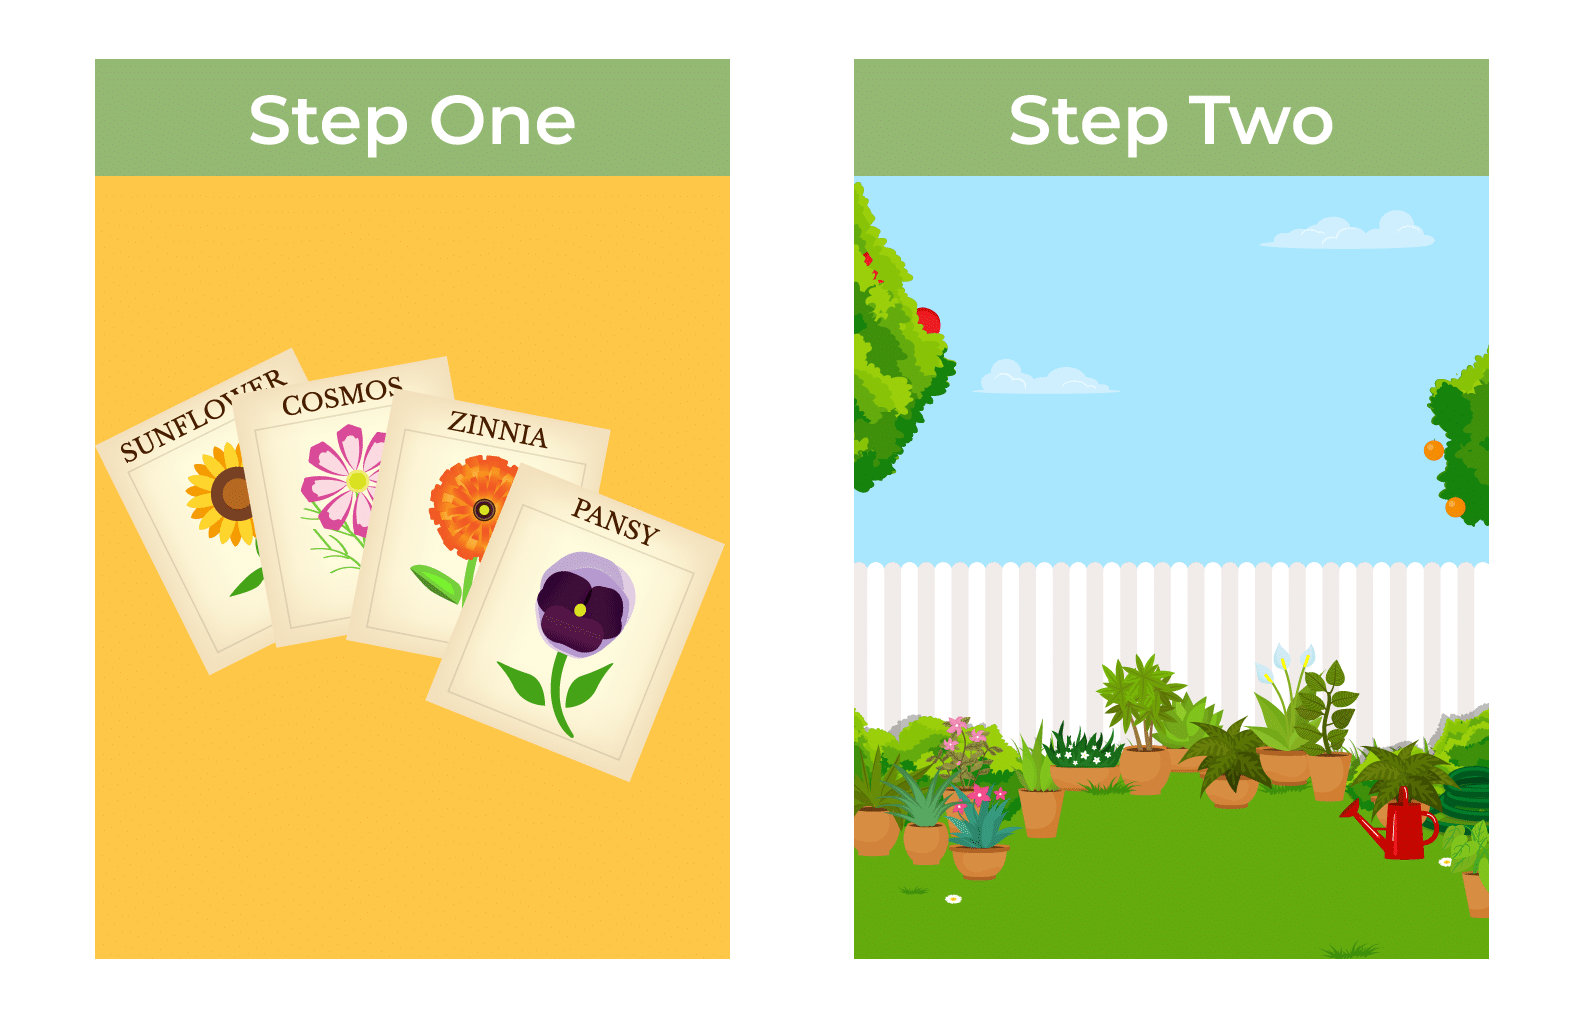 split graphic. left side labeled Step One featuring a variety of flower seed packets and right side labeled Step Two featuring a diverse garden of plants